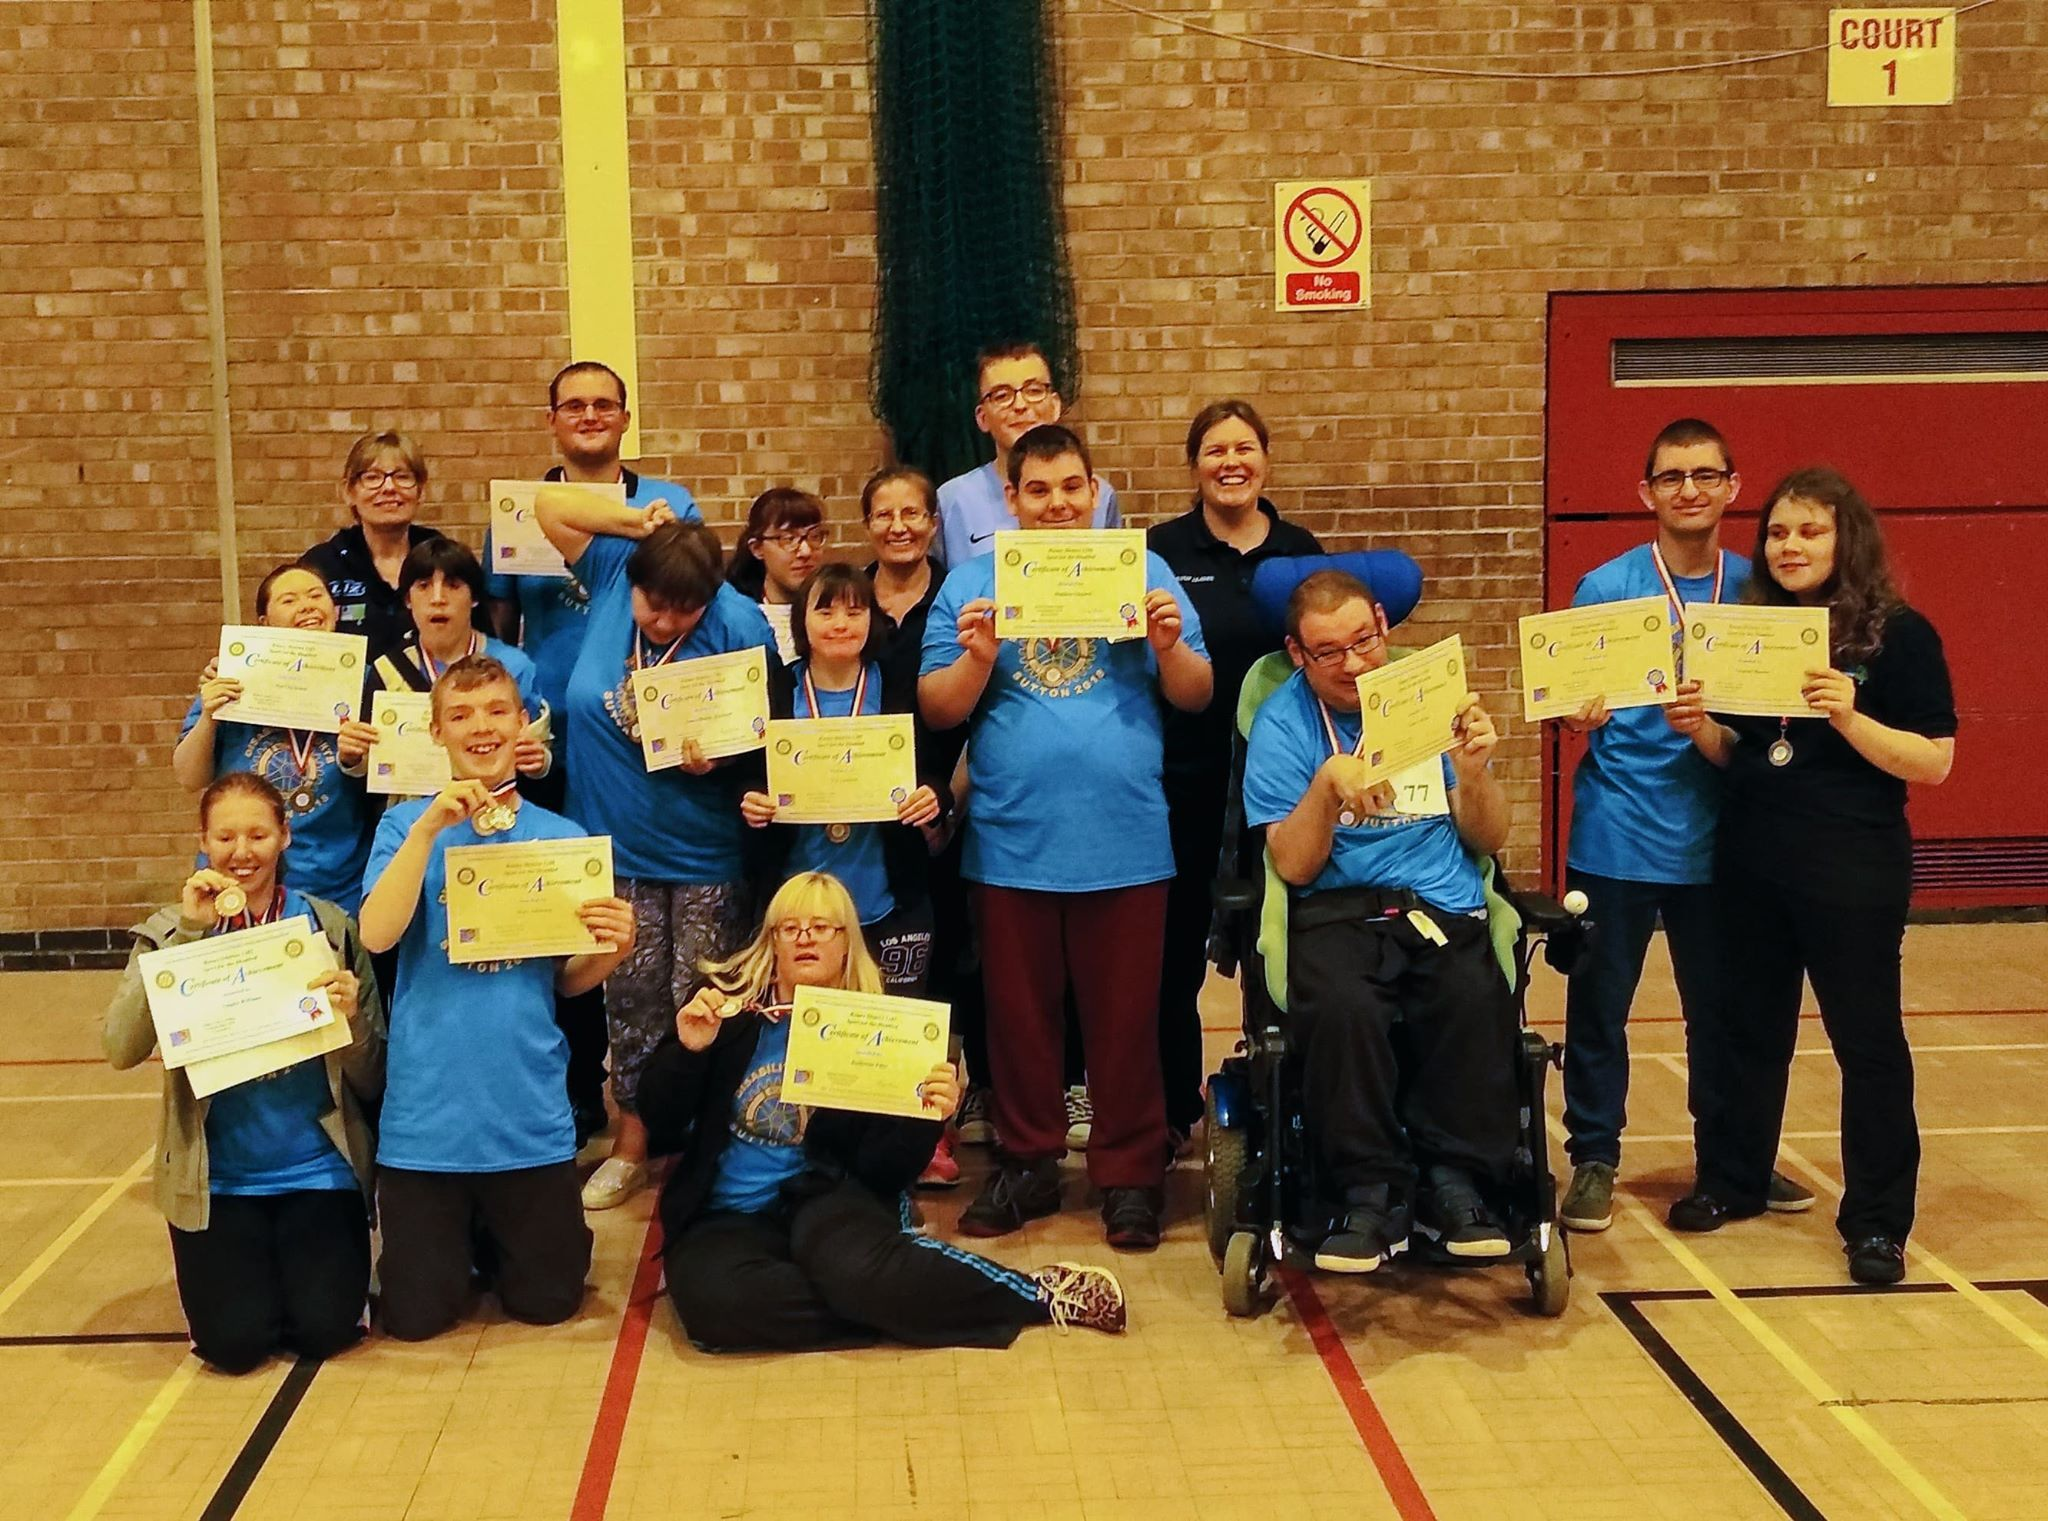 PLANS: Special Olympics Bury, in partnership with Jigsaw, hope to expand their sporting provision for disabled people